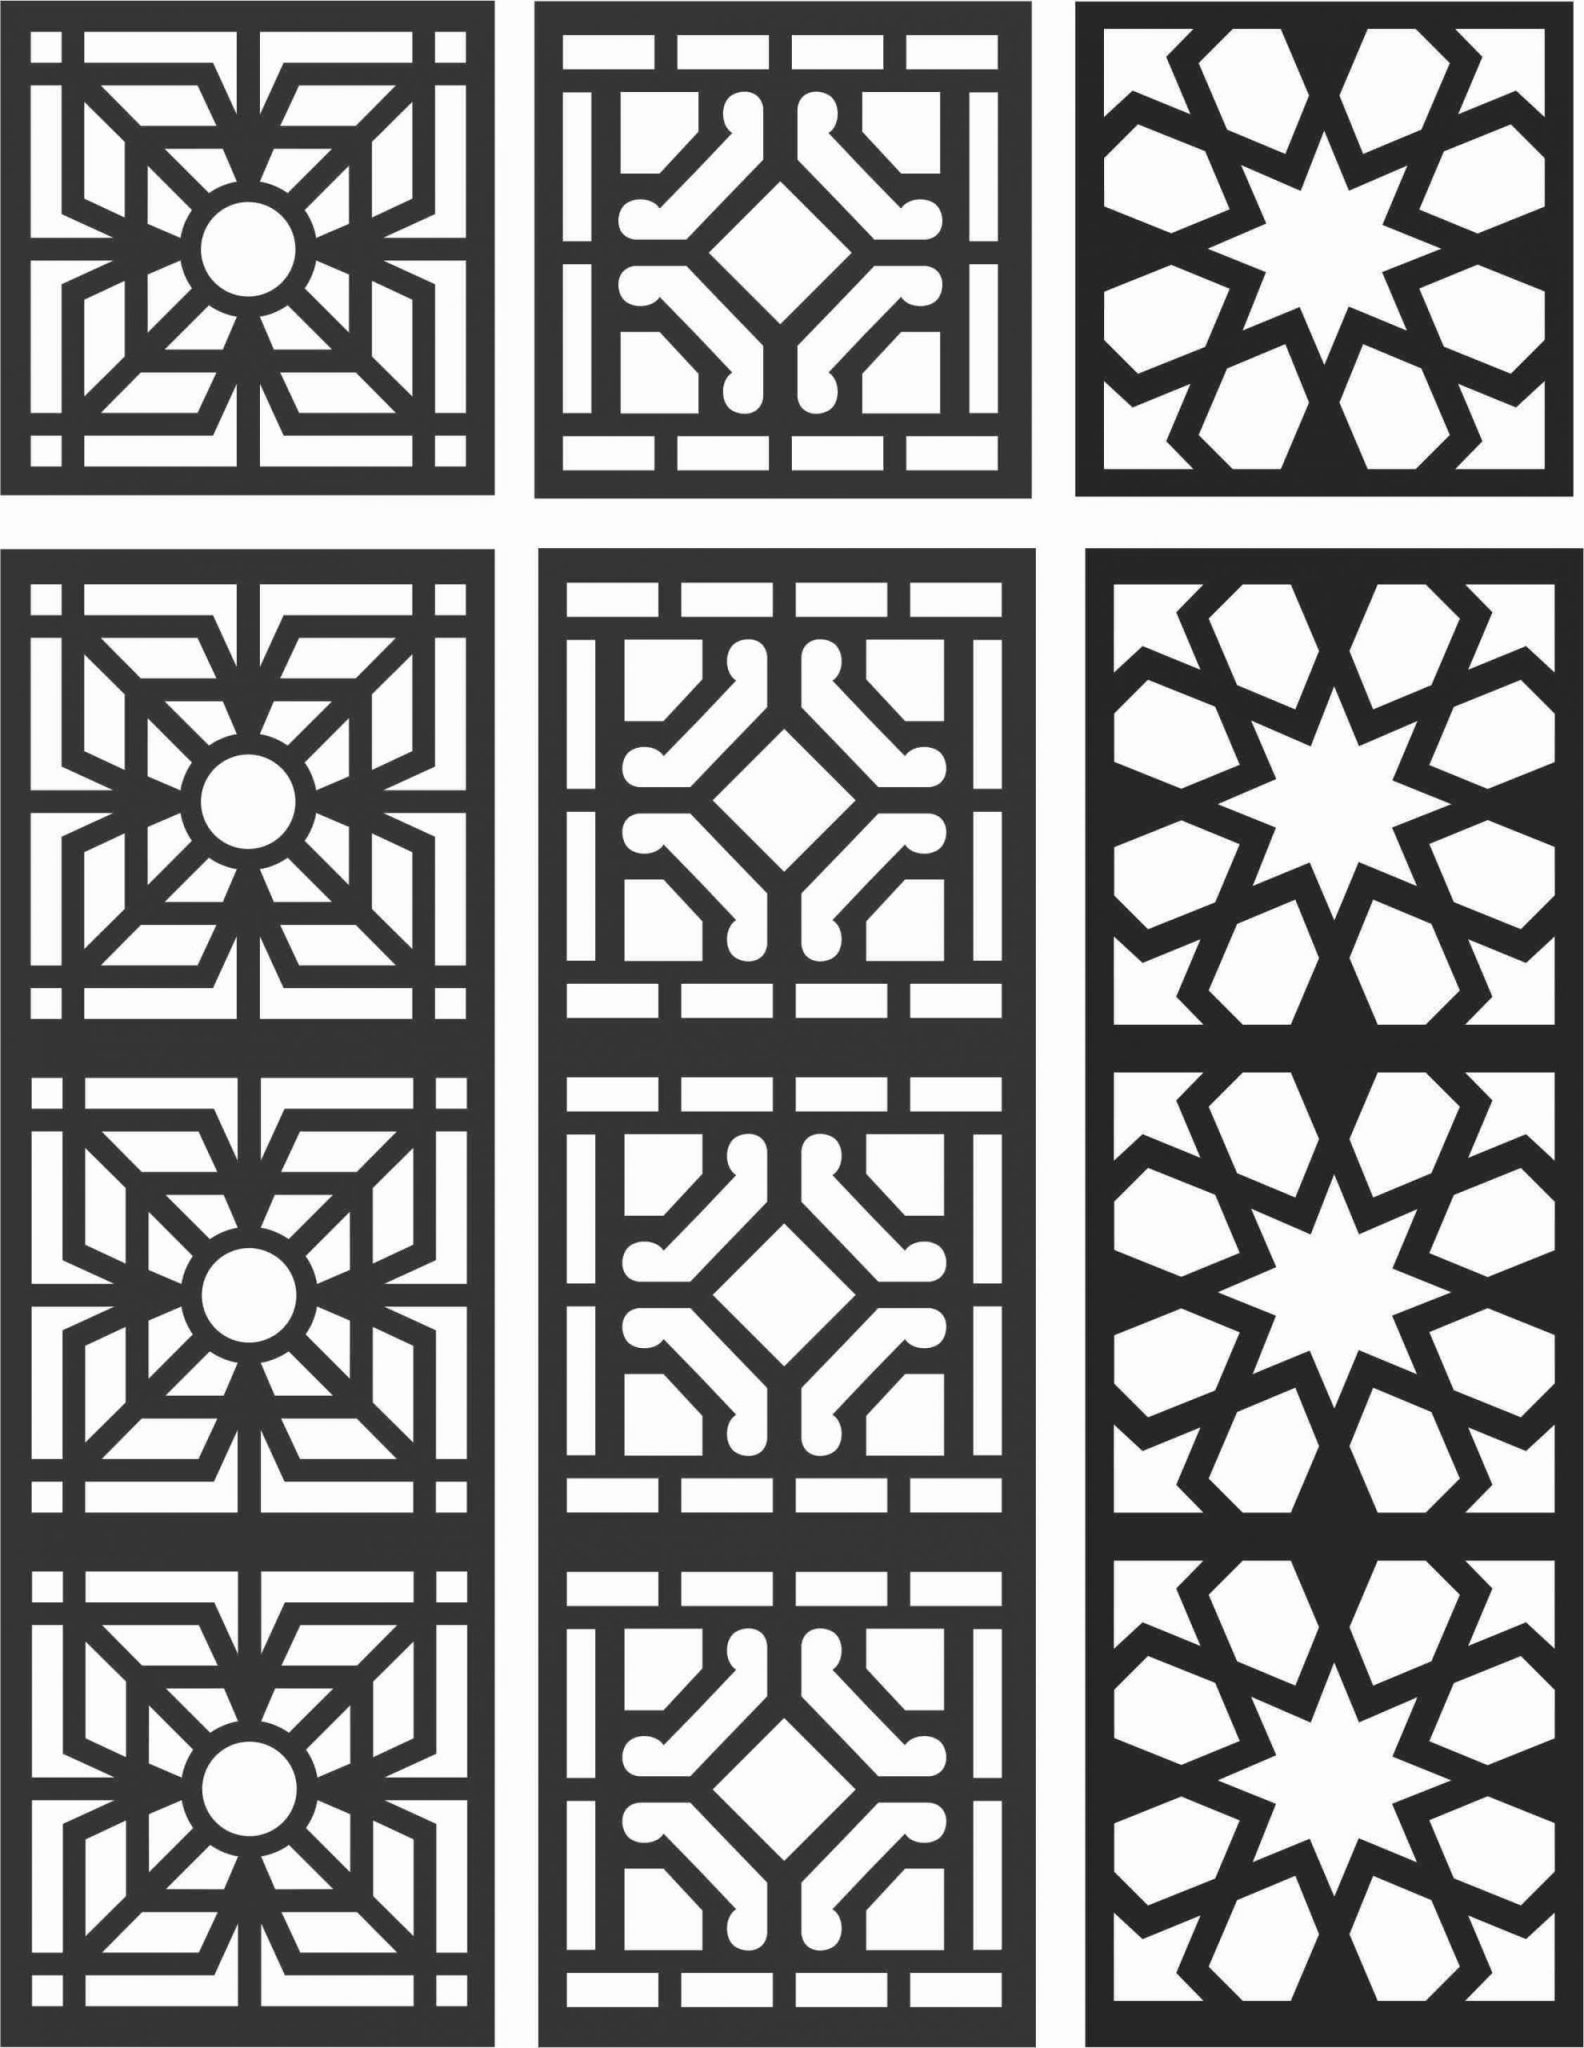 Floral Screen Patterns Design 99 Free DXF File